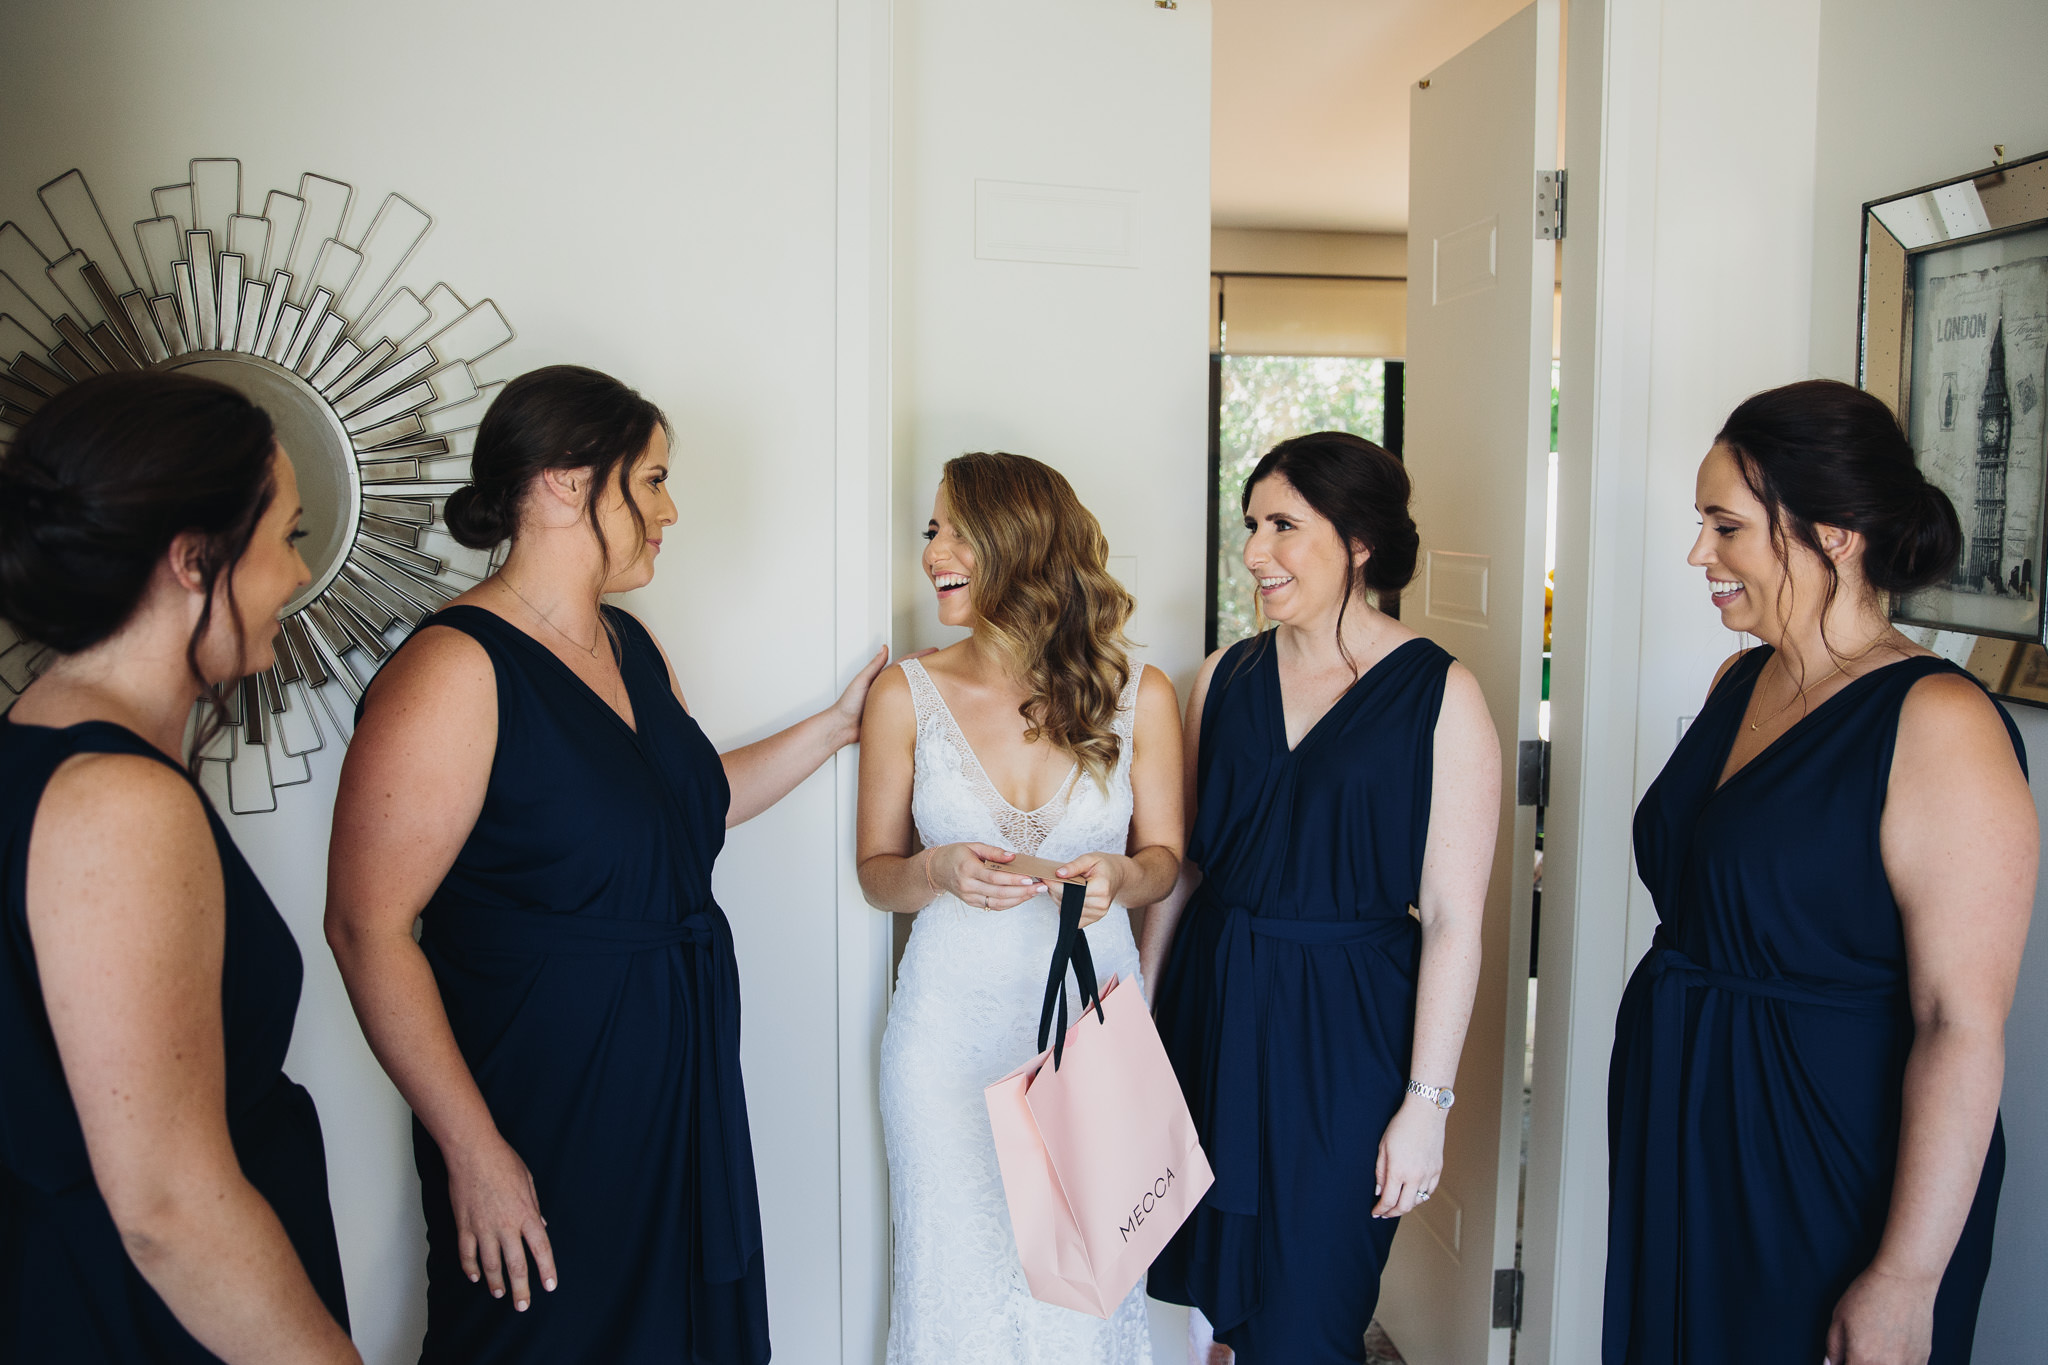 Bride and bridesmaids getting ready before the wedding